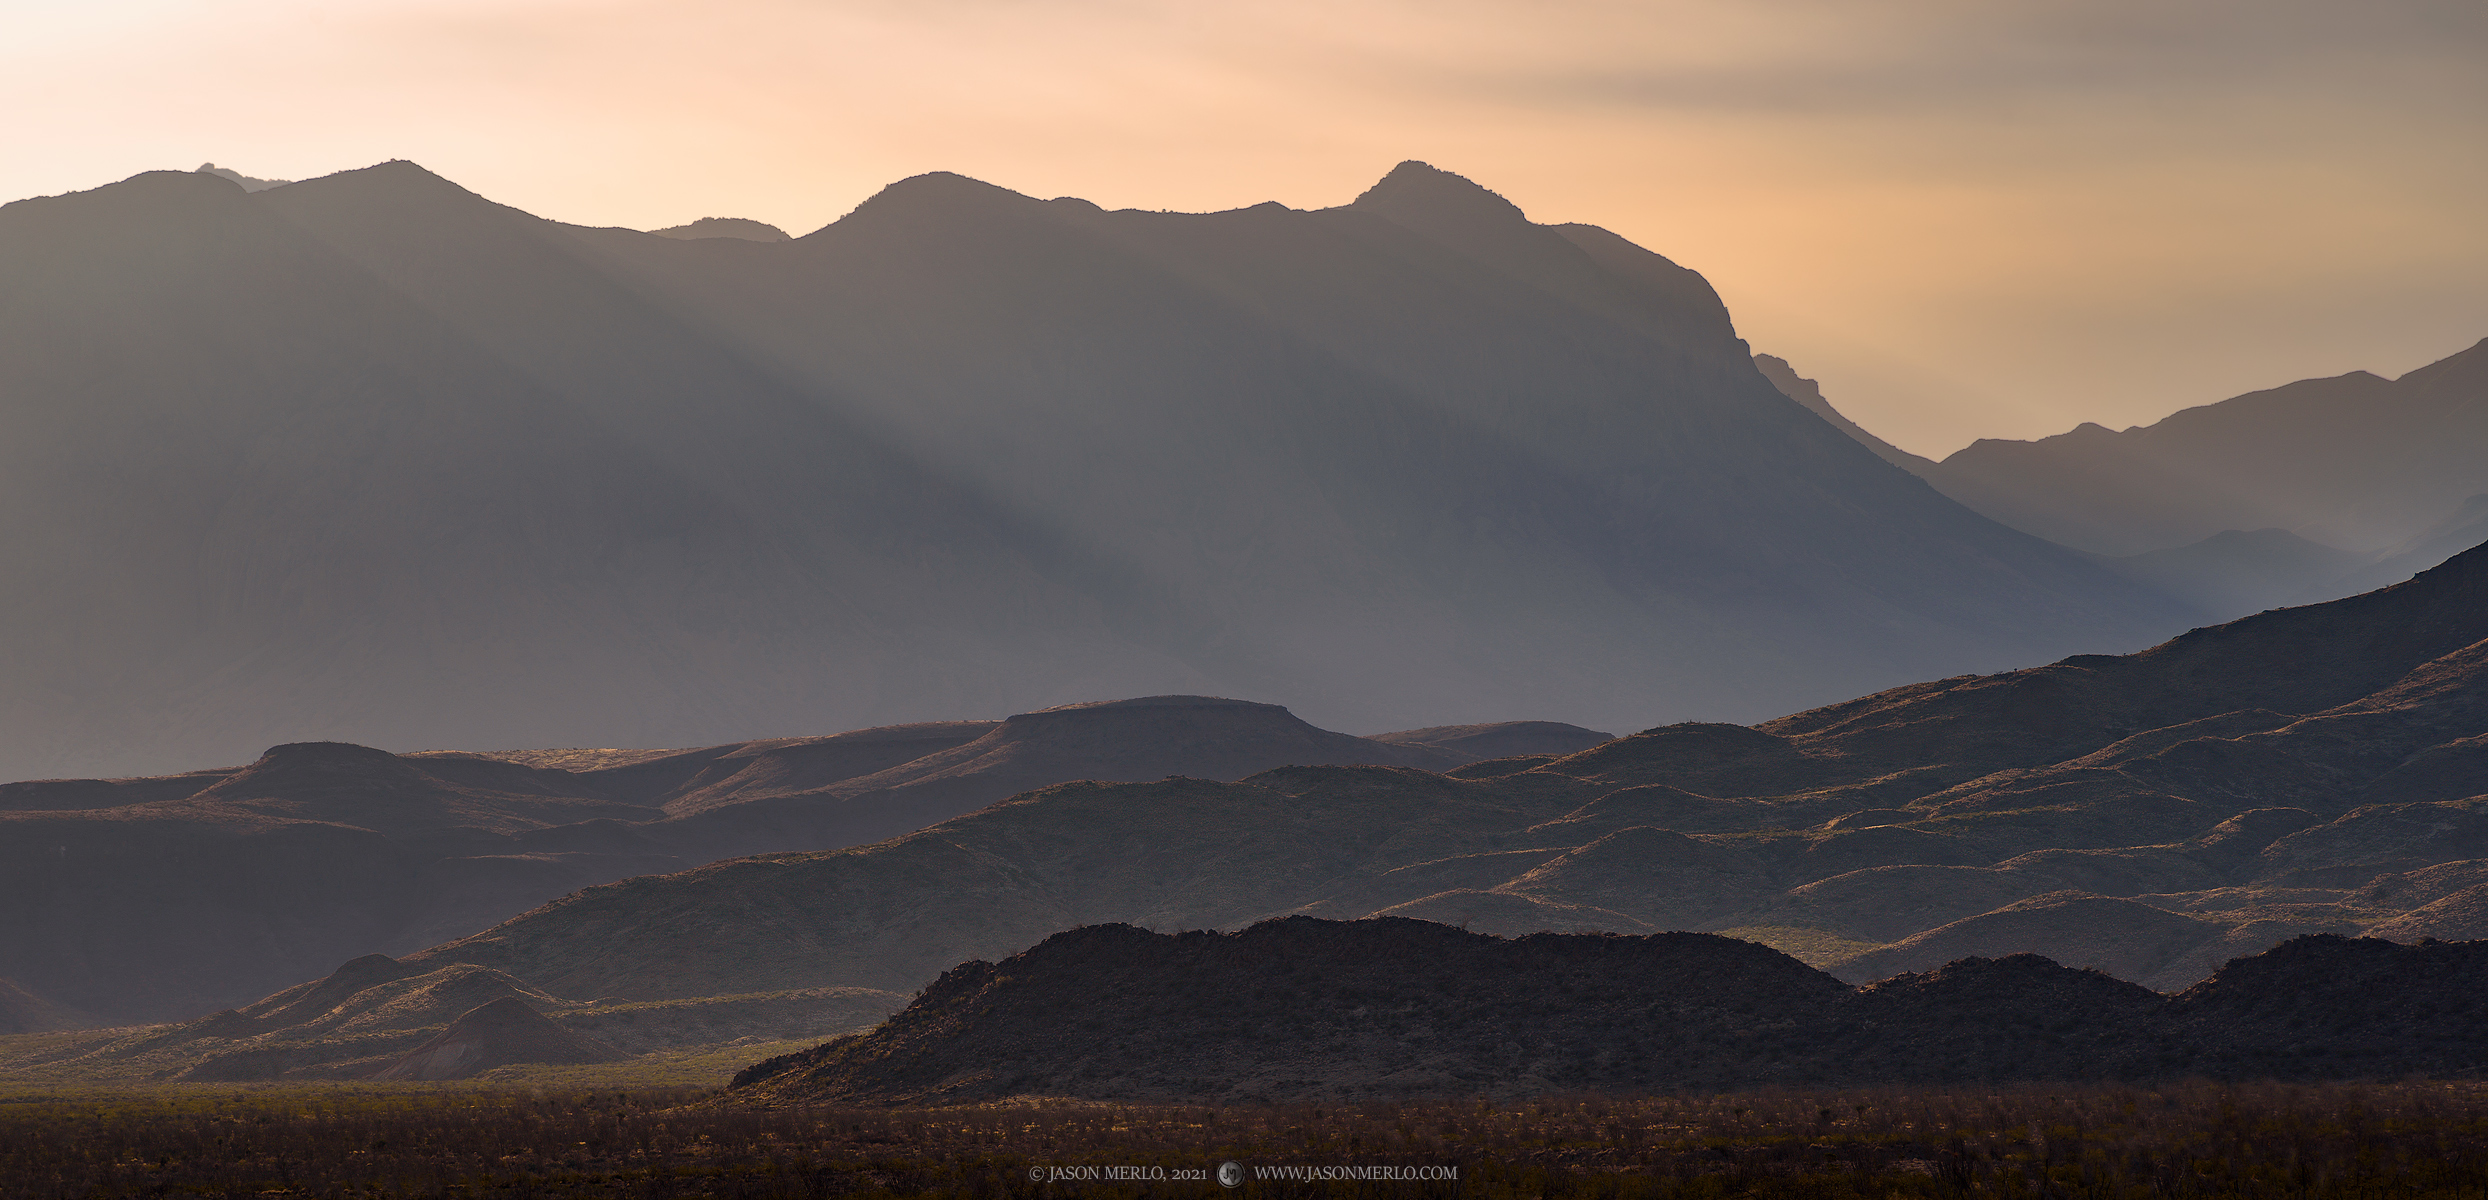 Mid-morning sunlight shining over the Chisos Mountains in Big Bend National Park in Brewster County in West Texas.